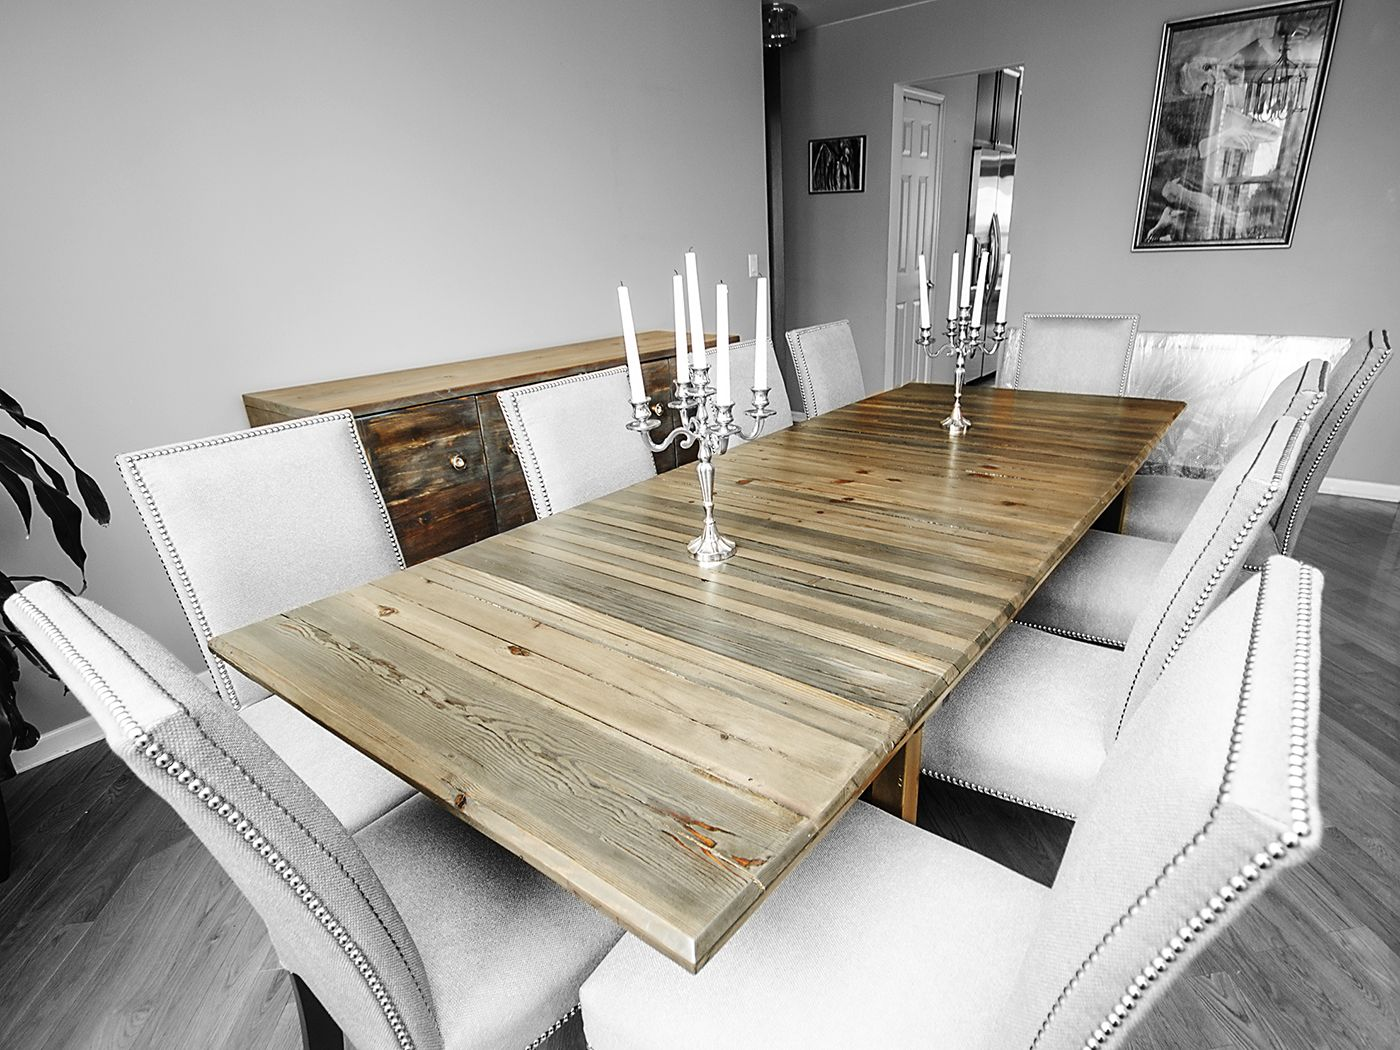 Large ebonizedwhite washed dining table with removable wooden legs